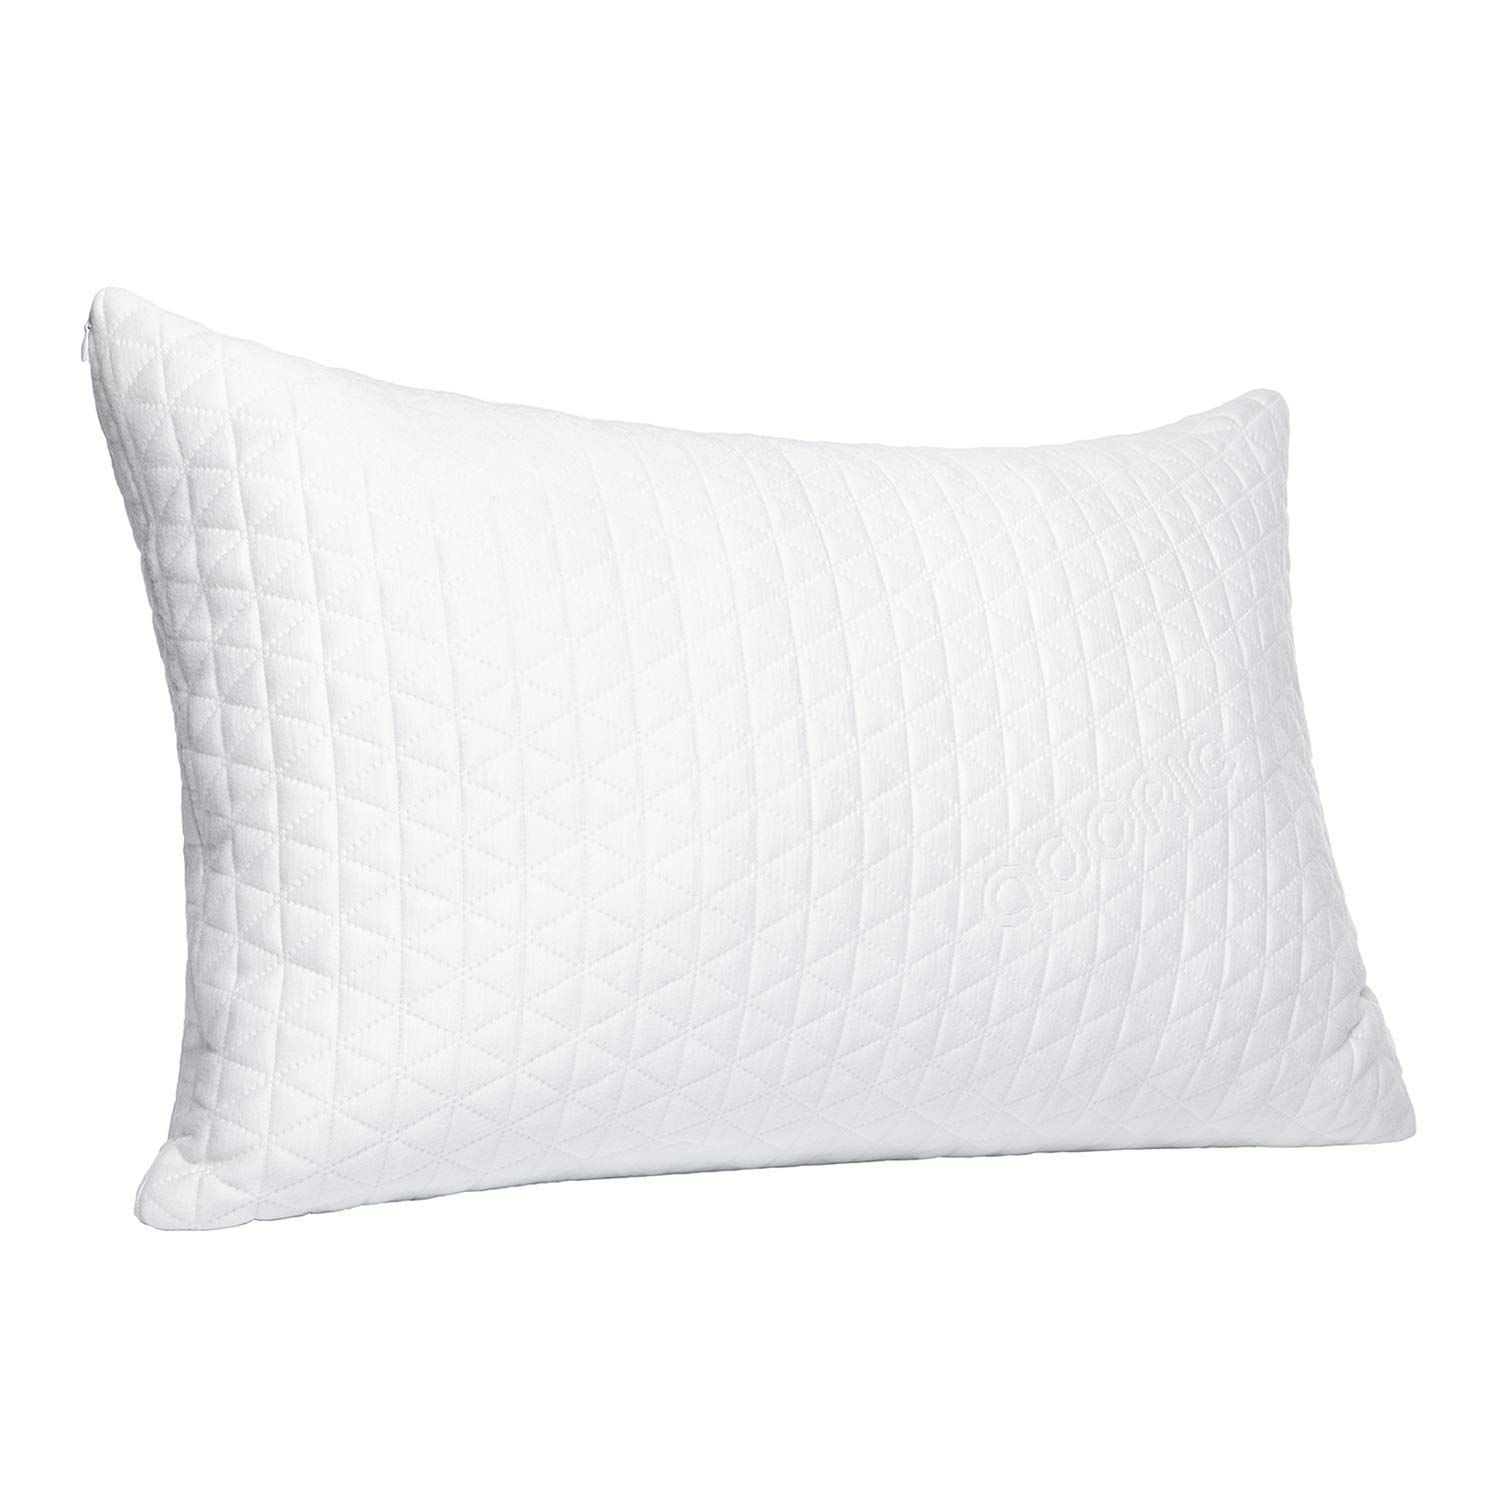 Adoric Pillows For Sleeping Shredded Memory Foam Pillow